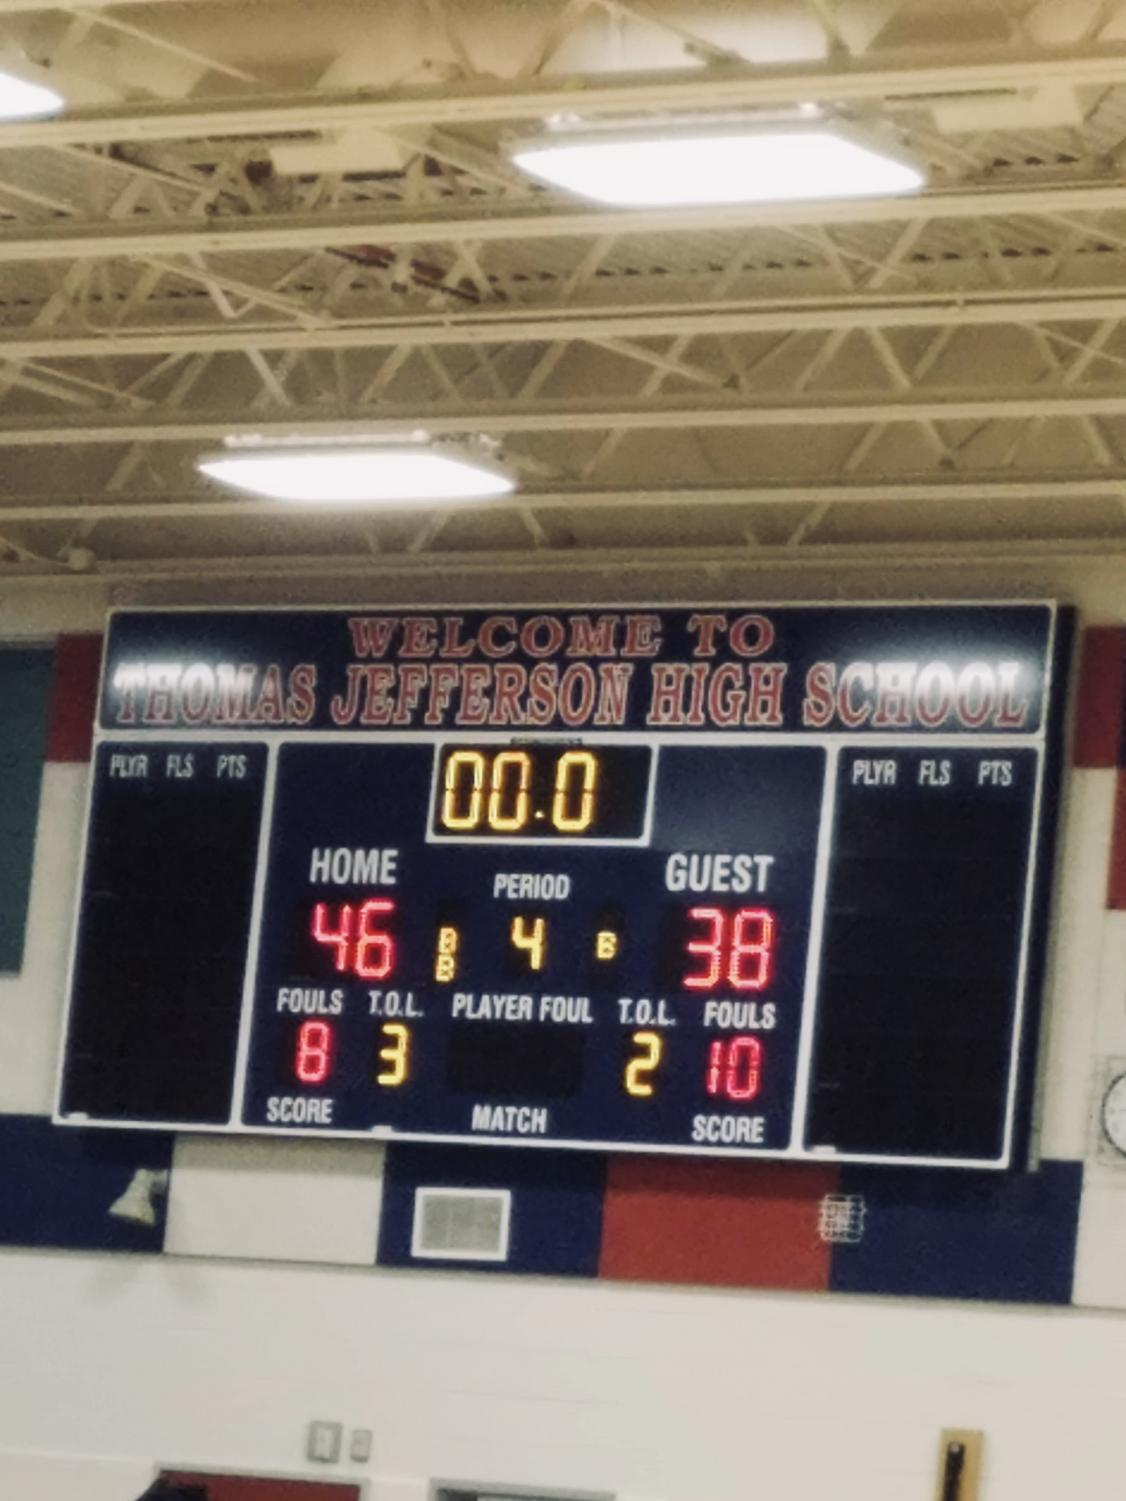 A+look+at+the+final+score+between+Jefferson+and+Wakefield+Girls+Varsity+Basketball.+The+game+was+very+close%2C+but+Jefferson+maintained+a+lead+throughout.